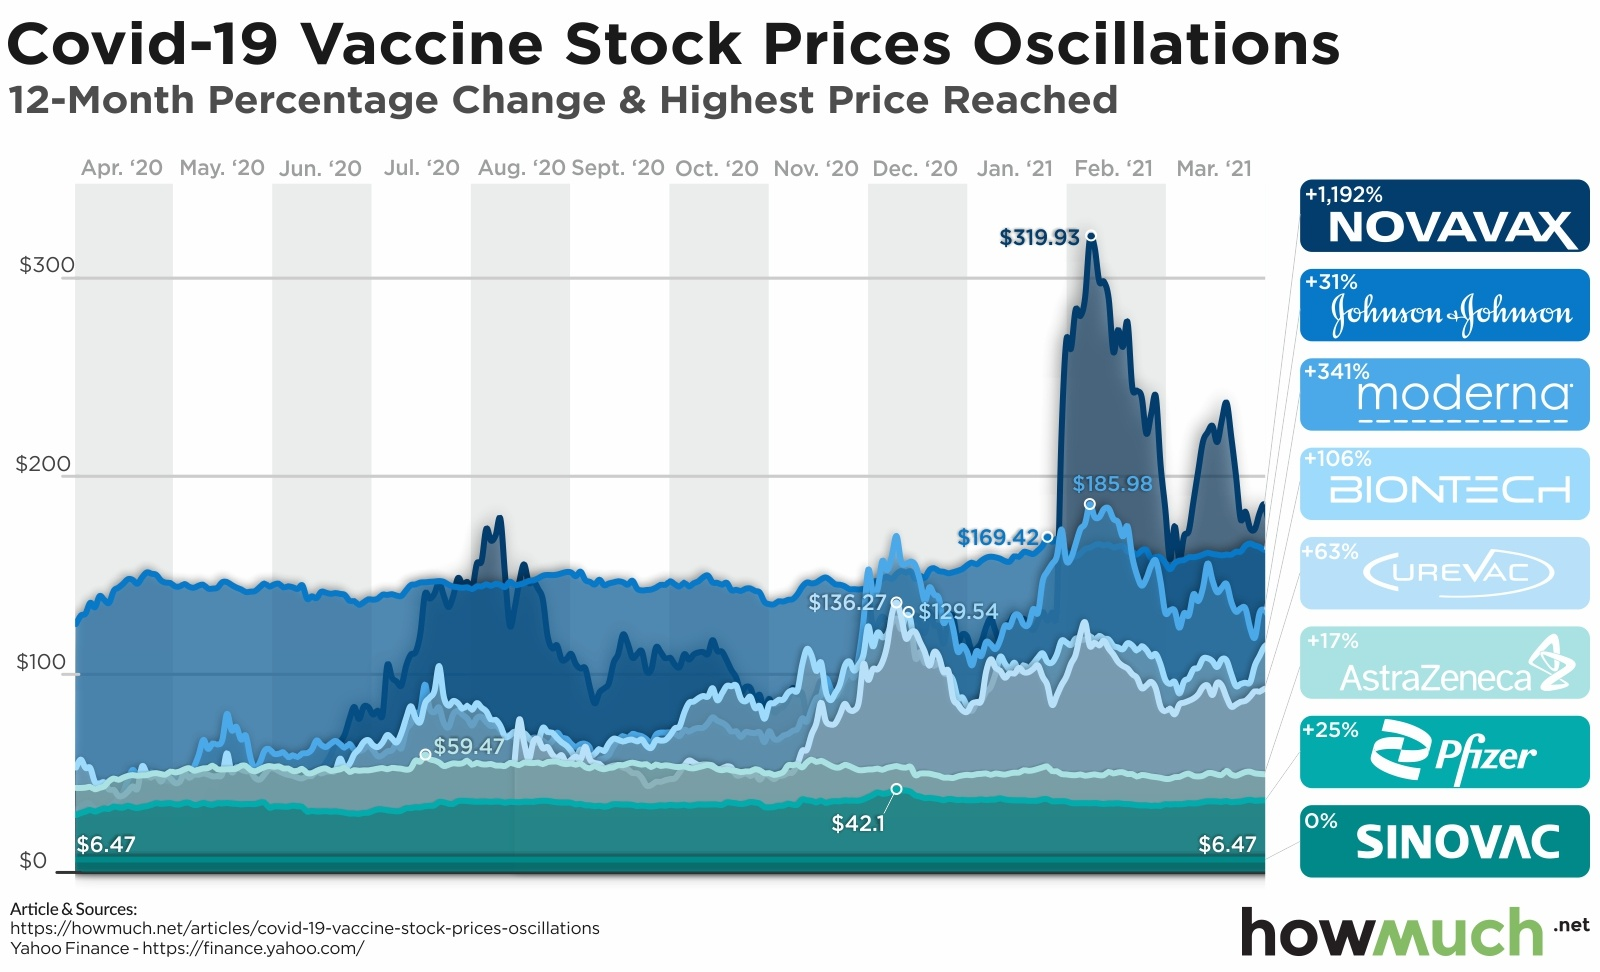 Top vaccine stocks